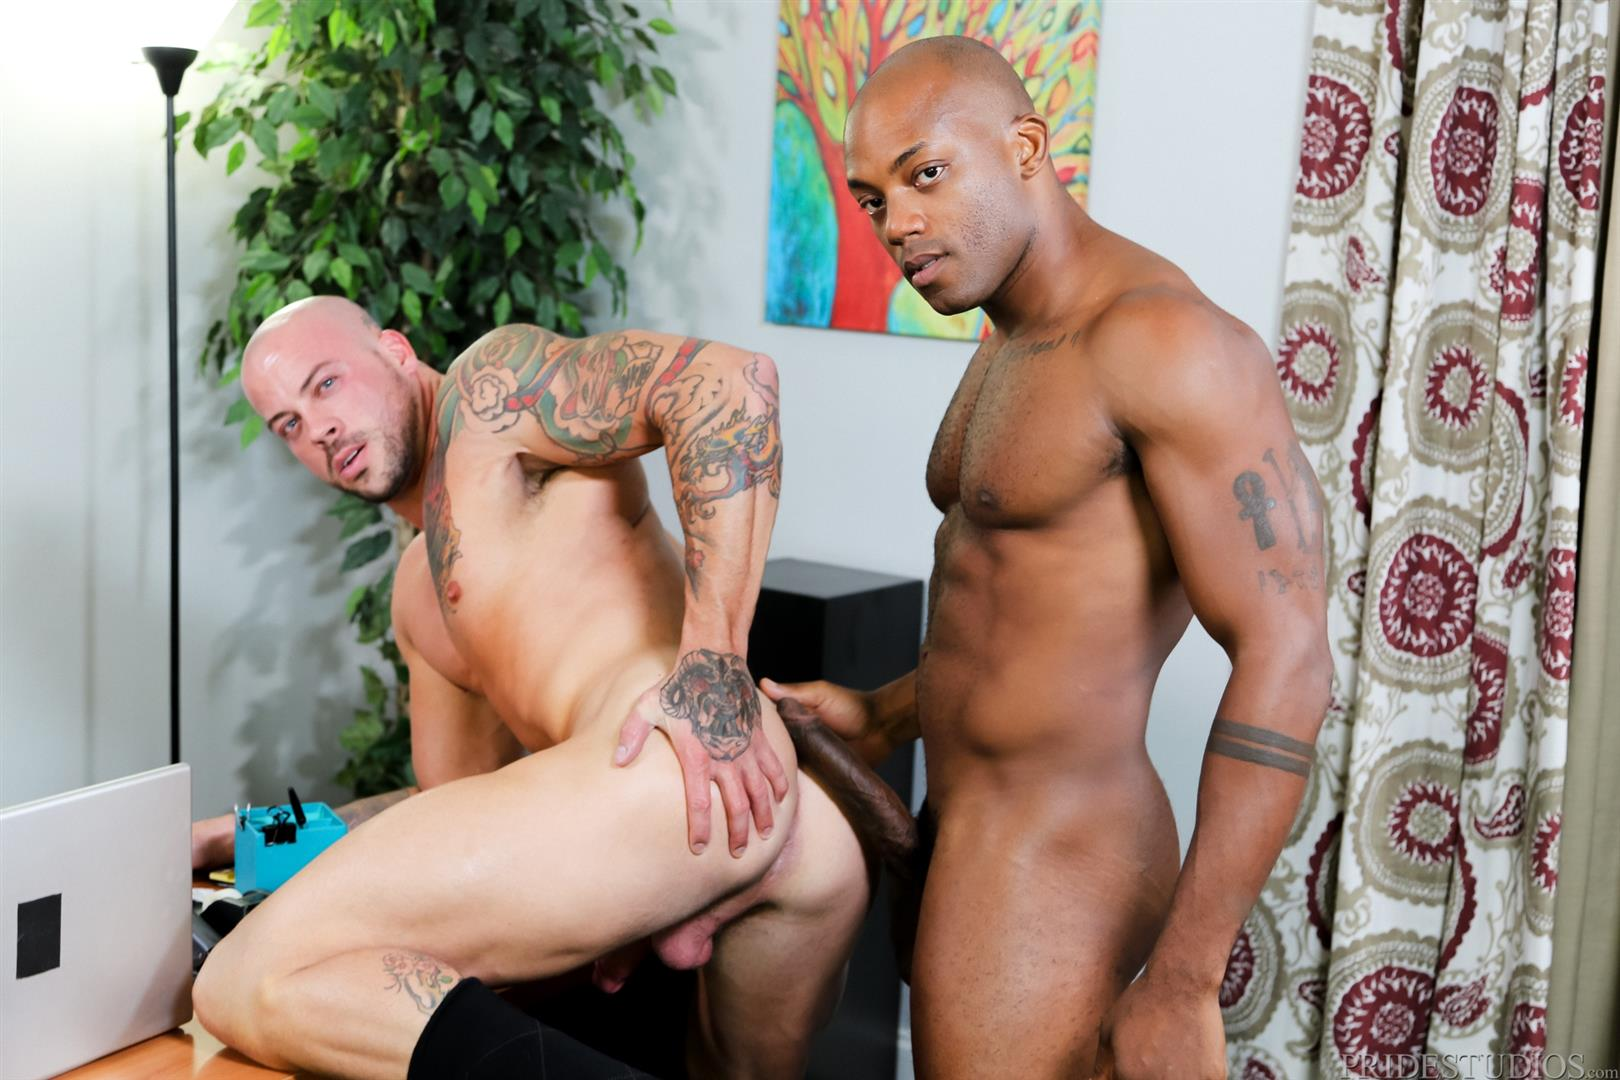 Sean-Duran-and-Osiris-Blade-Extra-Big-Dicks-Black-Cock-Interracial-Amateur-Gay-Porn-12 White Muscle Hunk Takes A Big Black Cock Up The Ass During A Job Interview